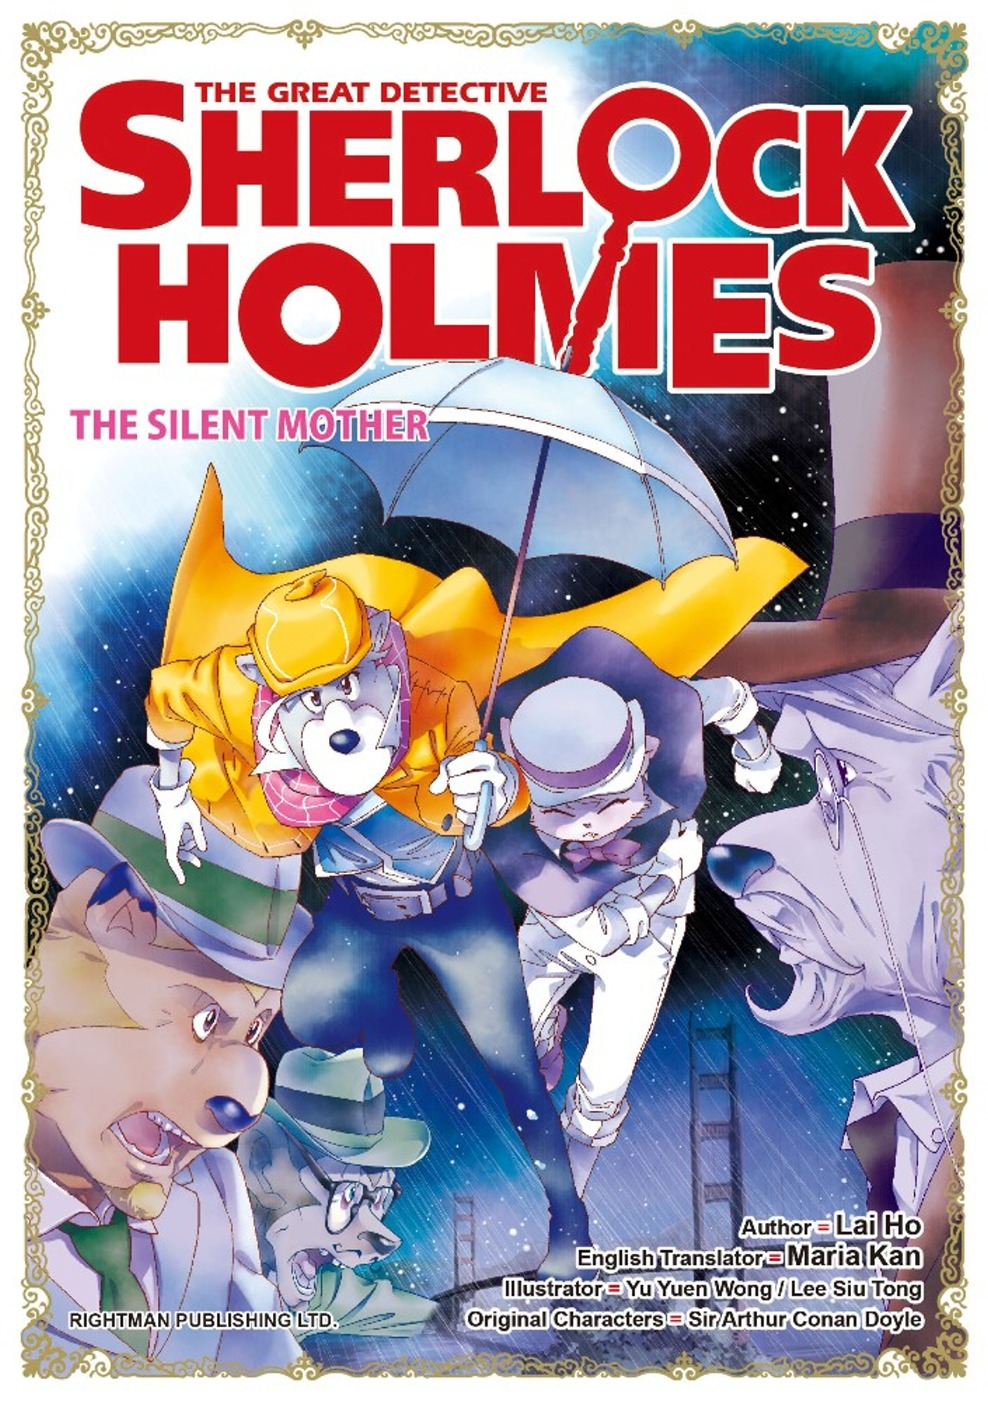 THE GREAT DETECTIVE SHERLOCK HOLMES #13 The Silent Mother